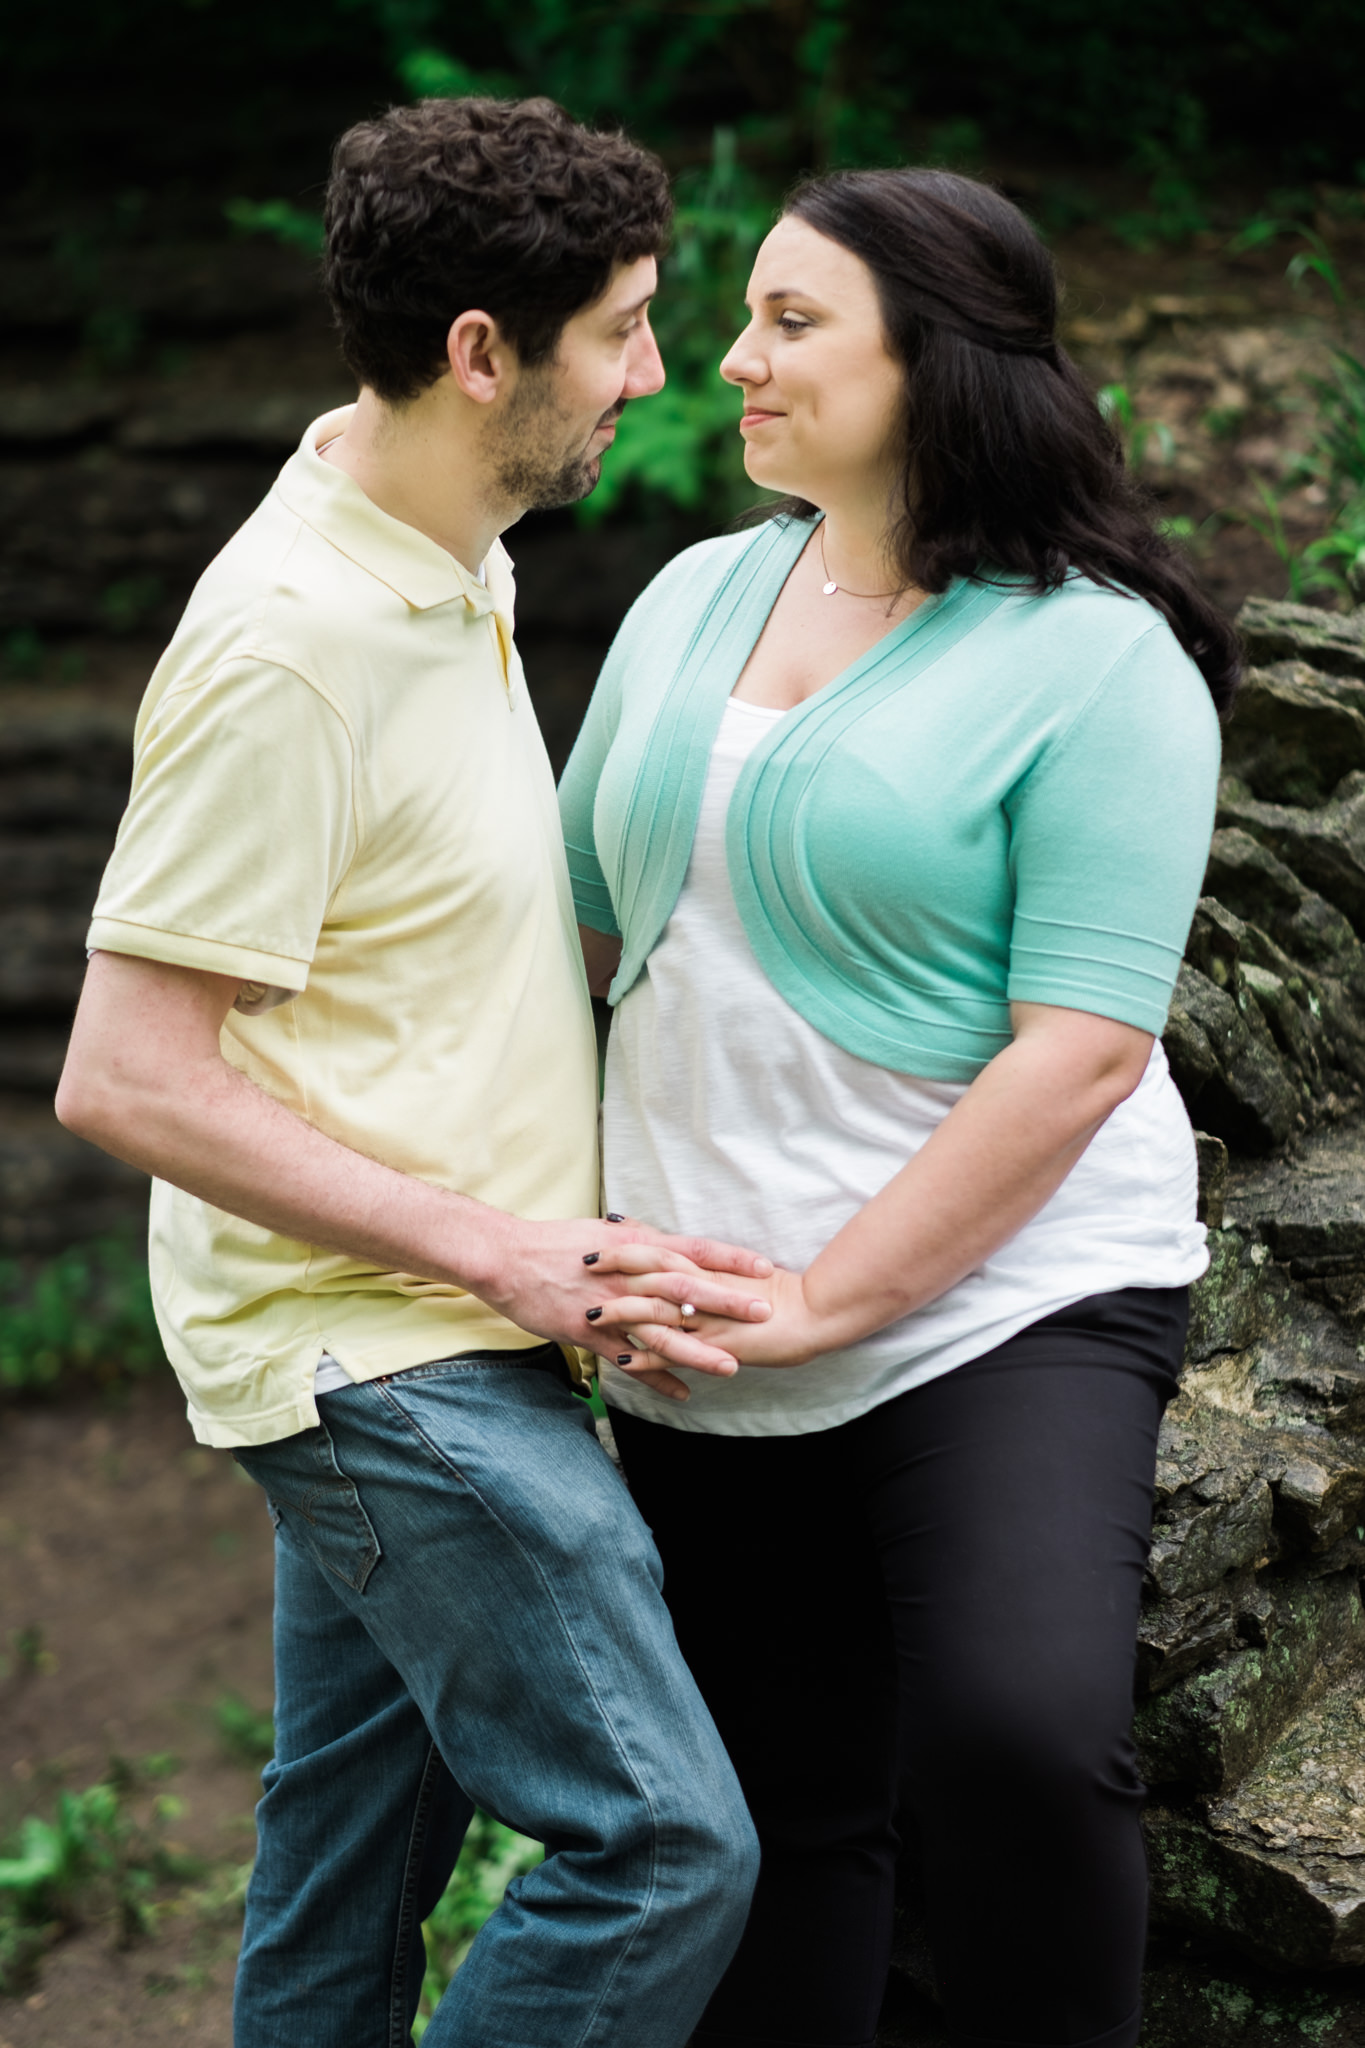 Lee&Steven_Engagement_Blog_0012.jpg